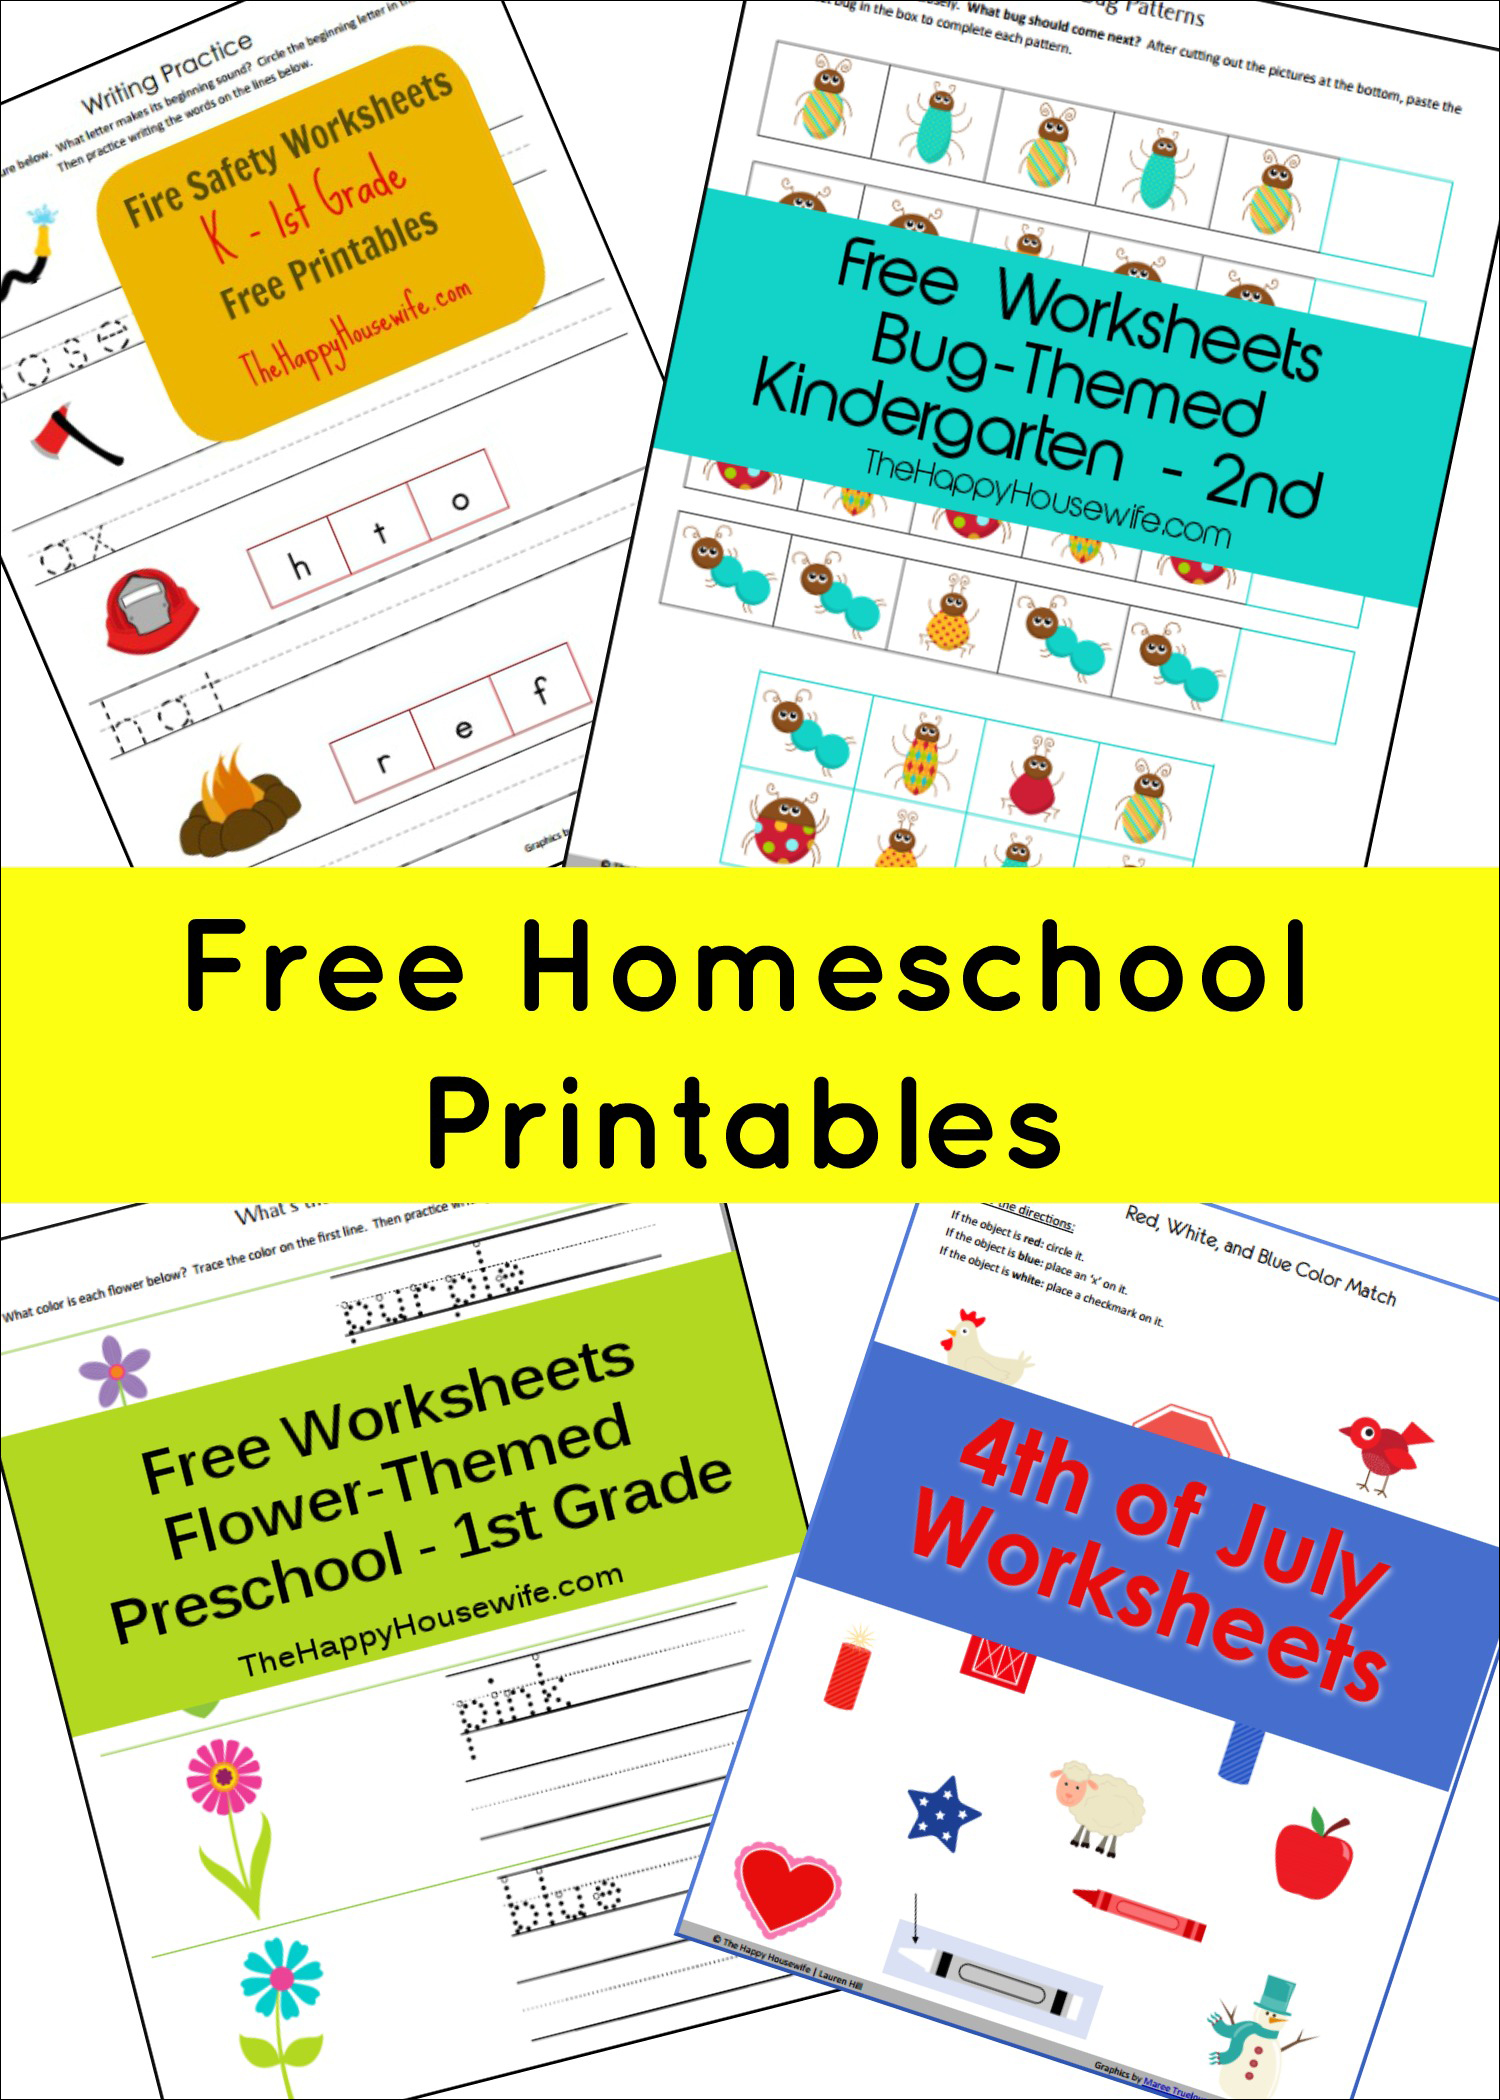 Free-Homeschool-Printables